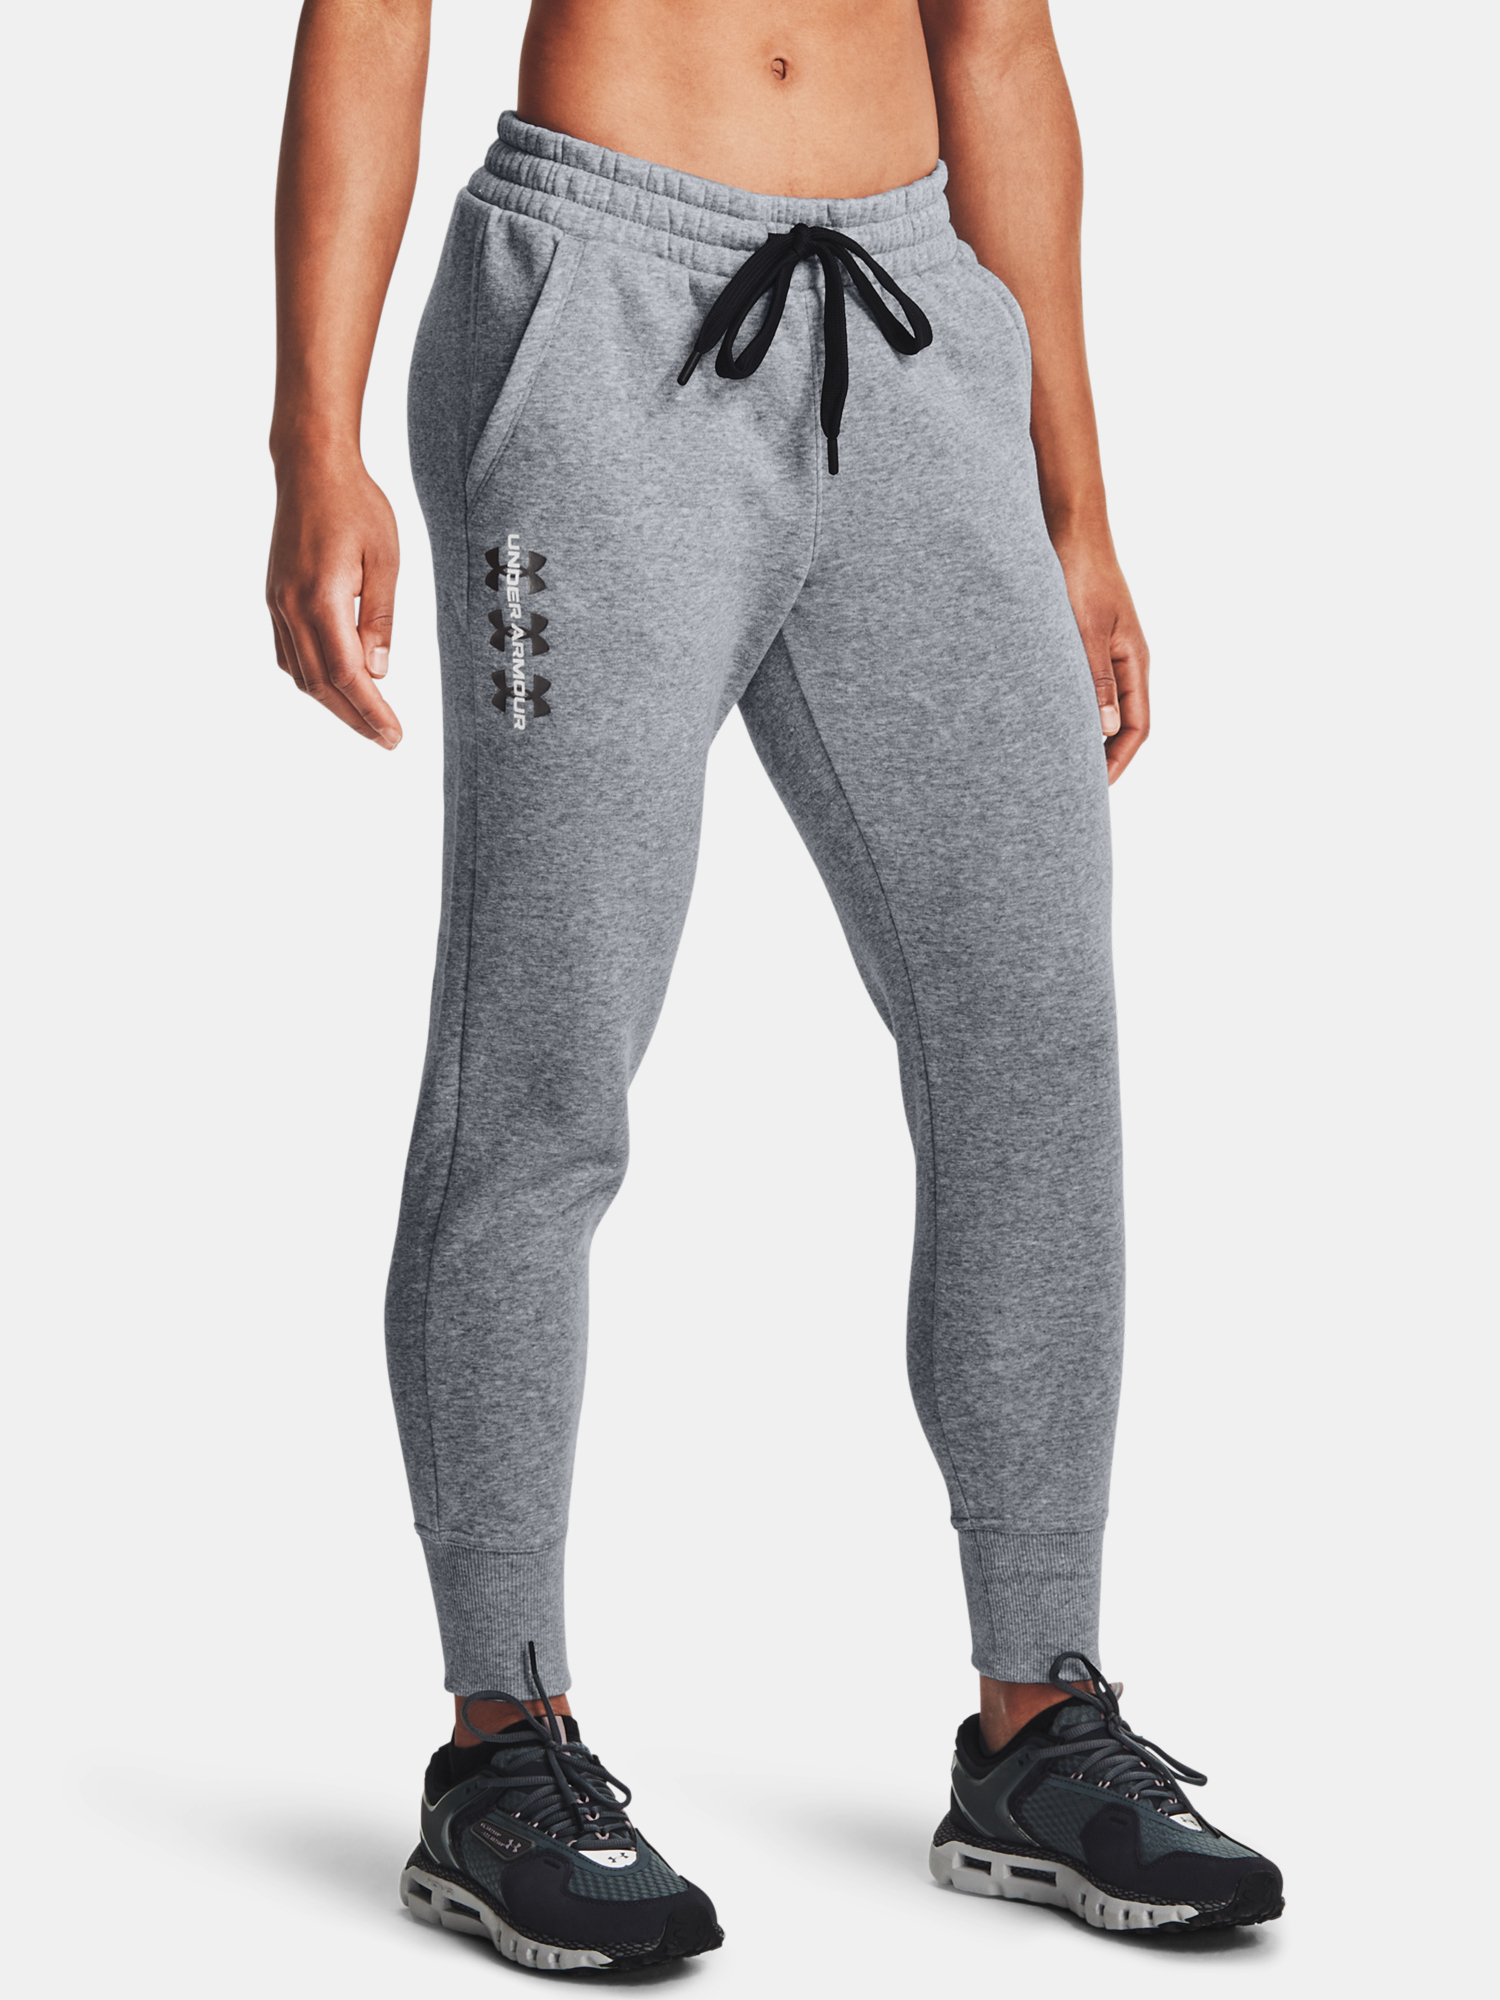 Kalhoty Under Armour Rival Fleece Pants-AMP-GRY (1)